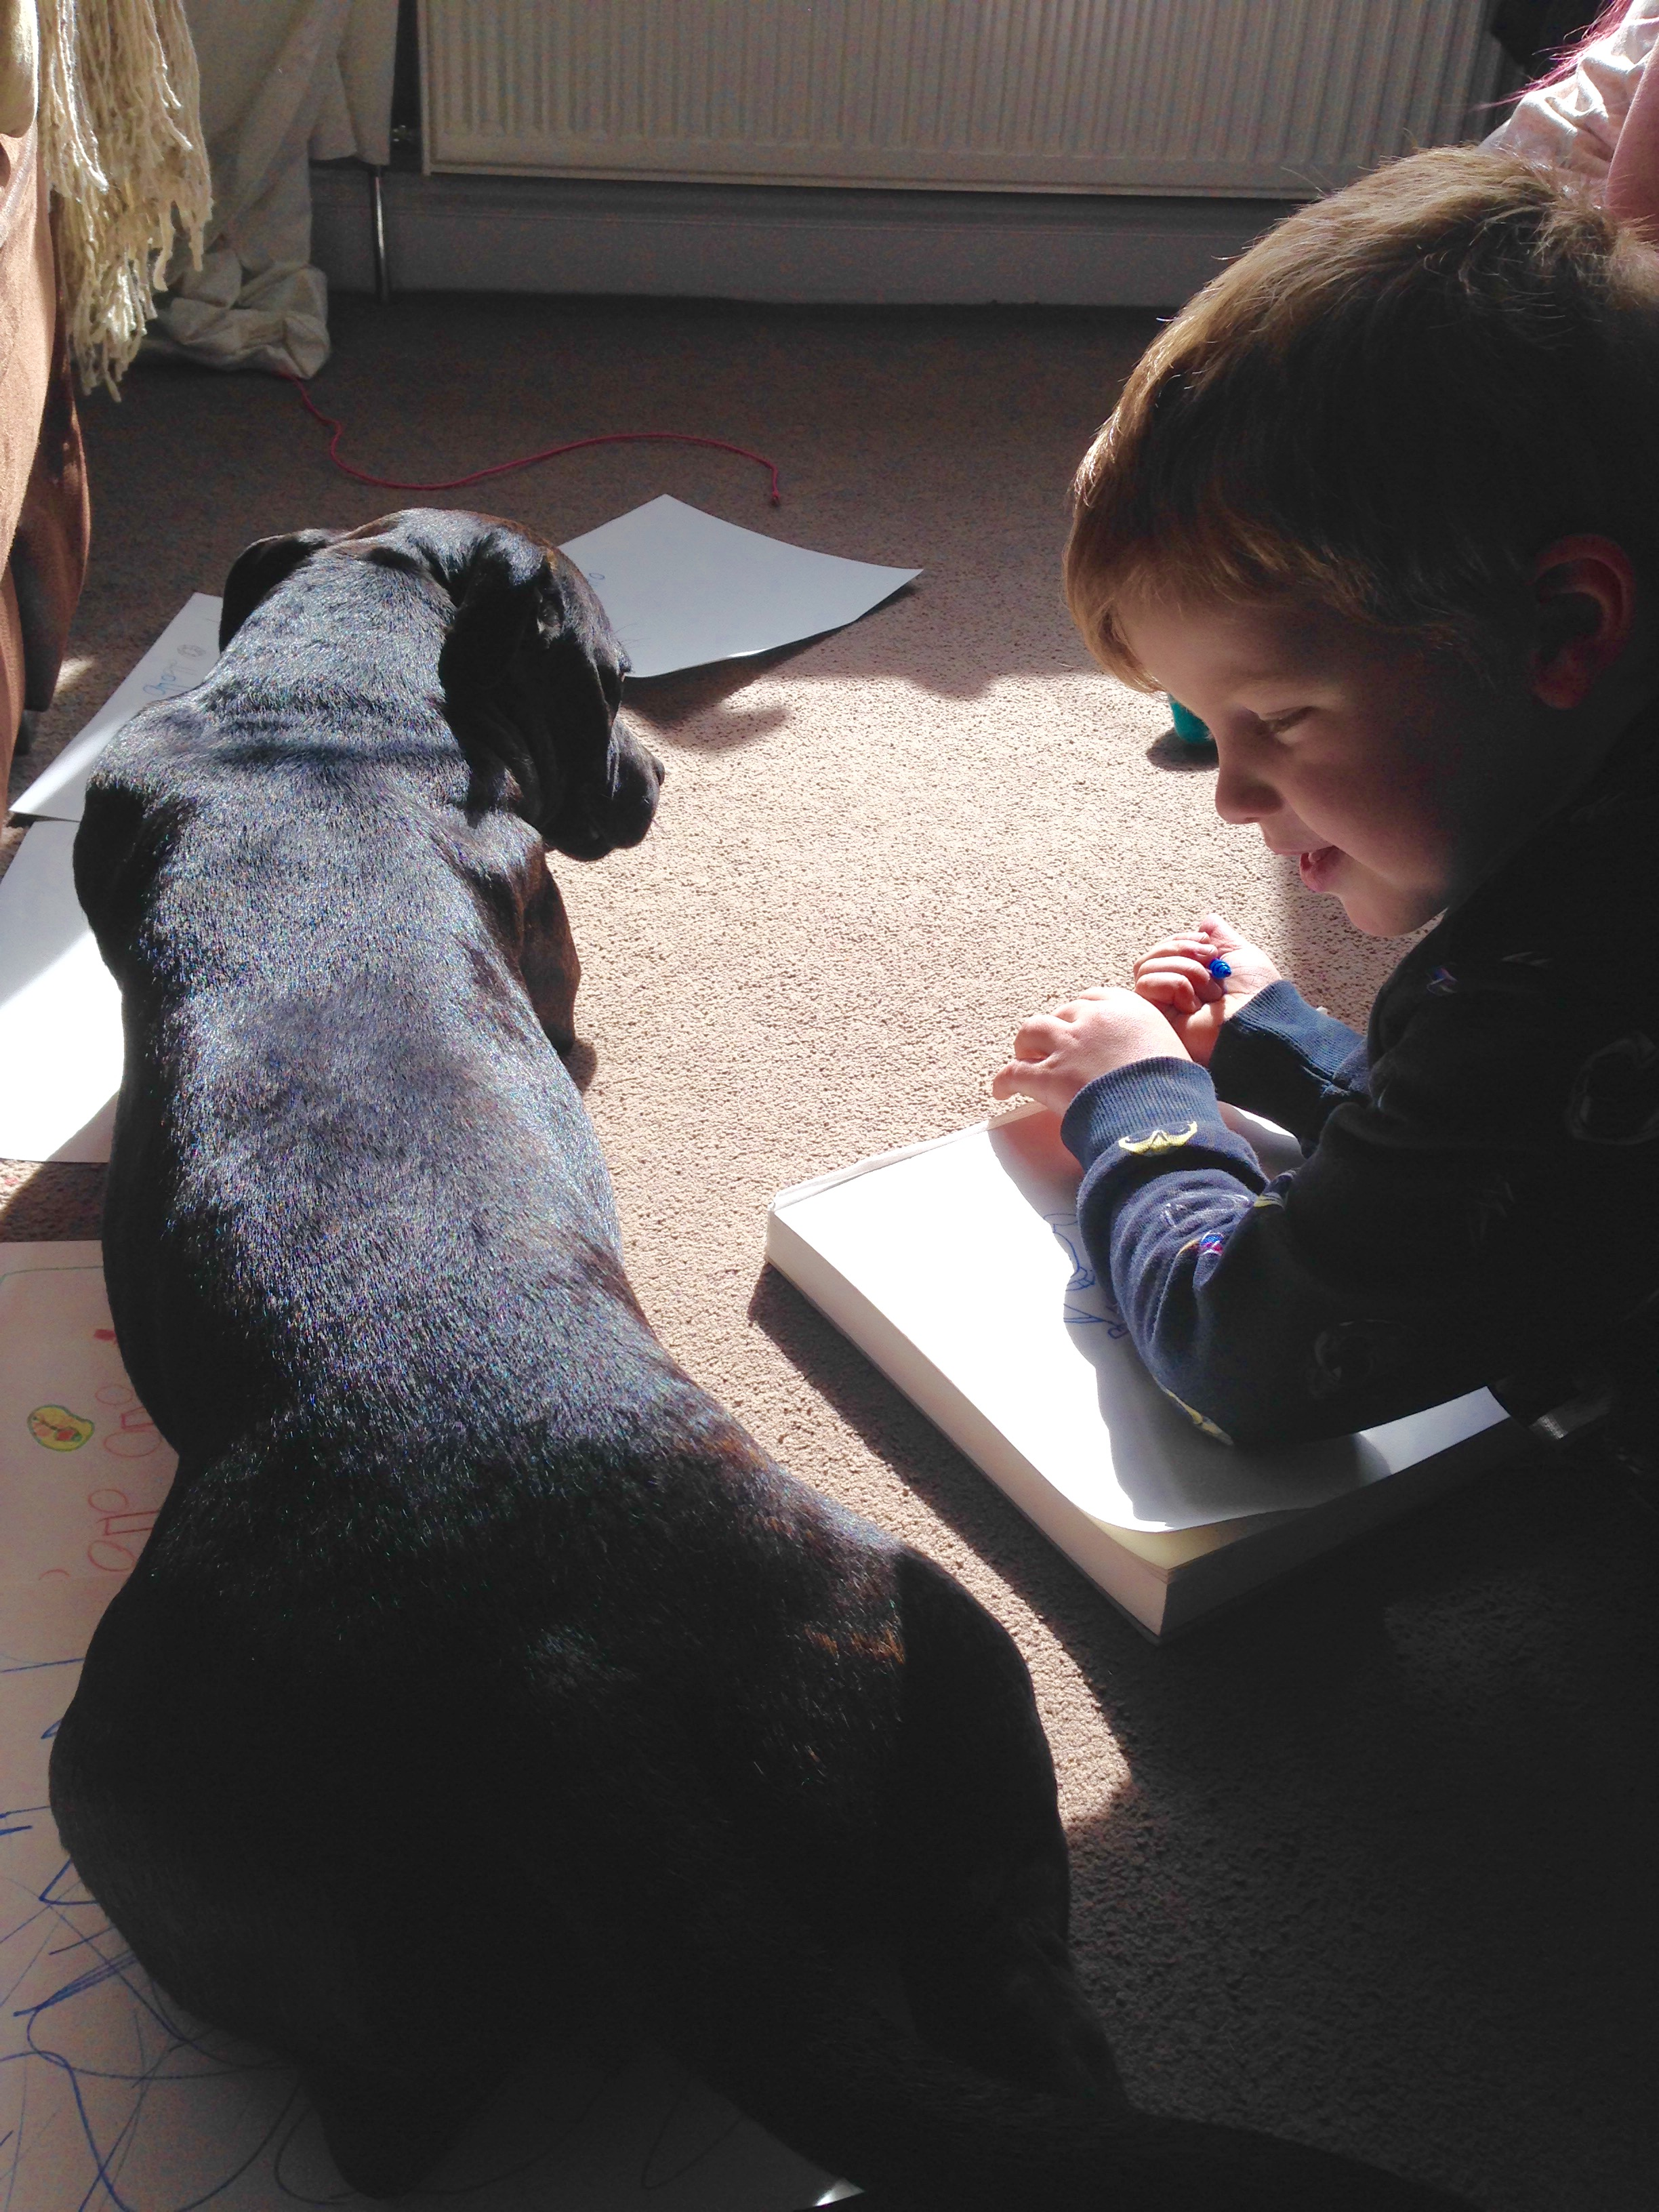 Staffordshire bull terrier acting as the Nanny Dog.